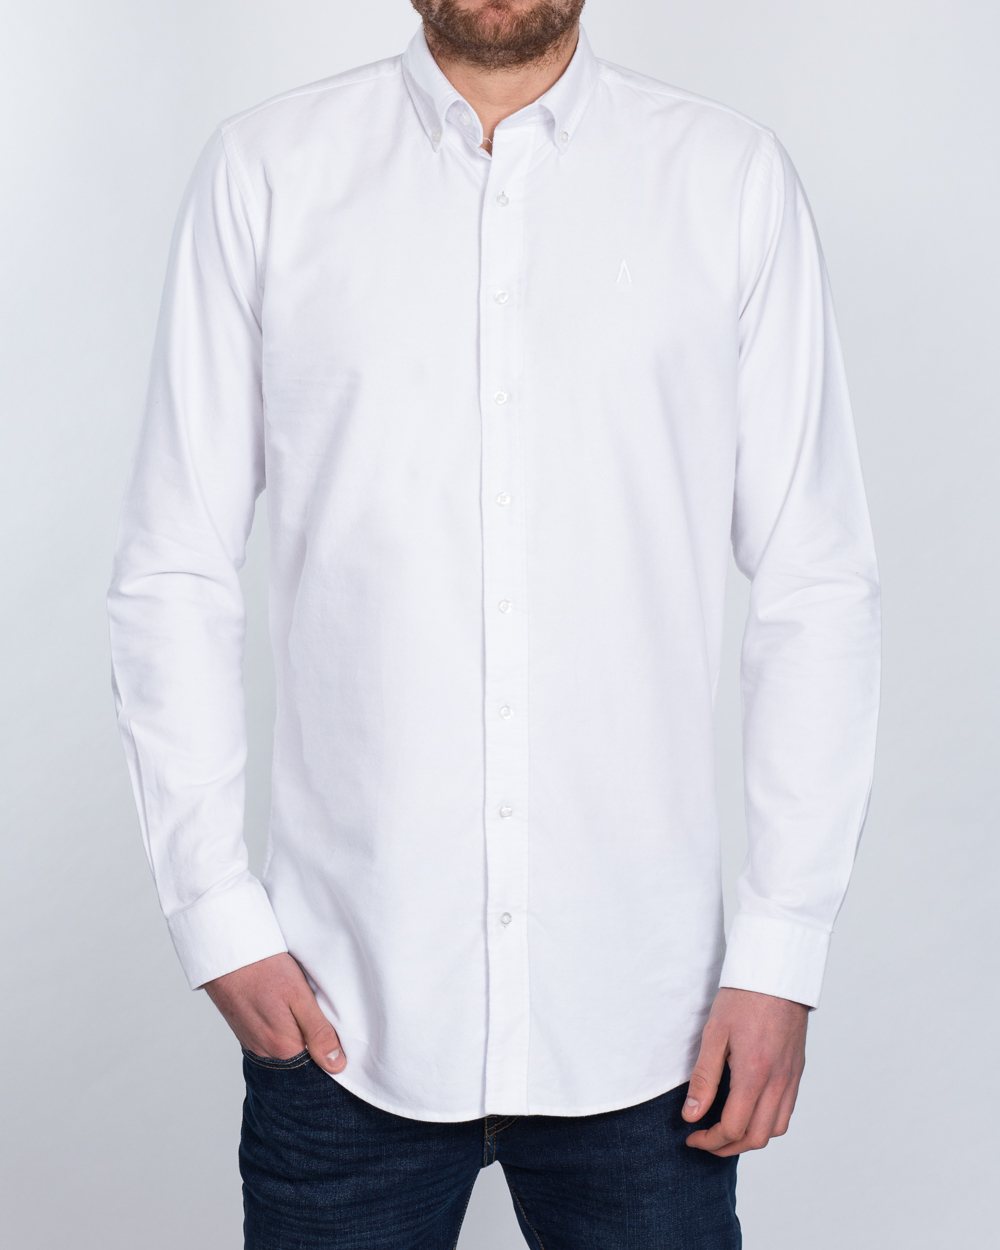 2t Oxford Slim Fit Long Sleeve Tall Shirt (white)